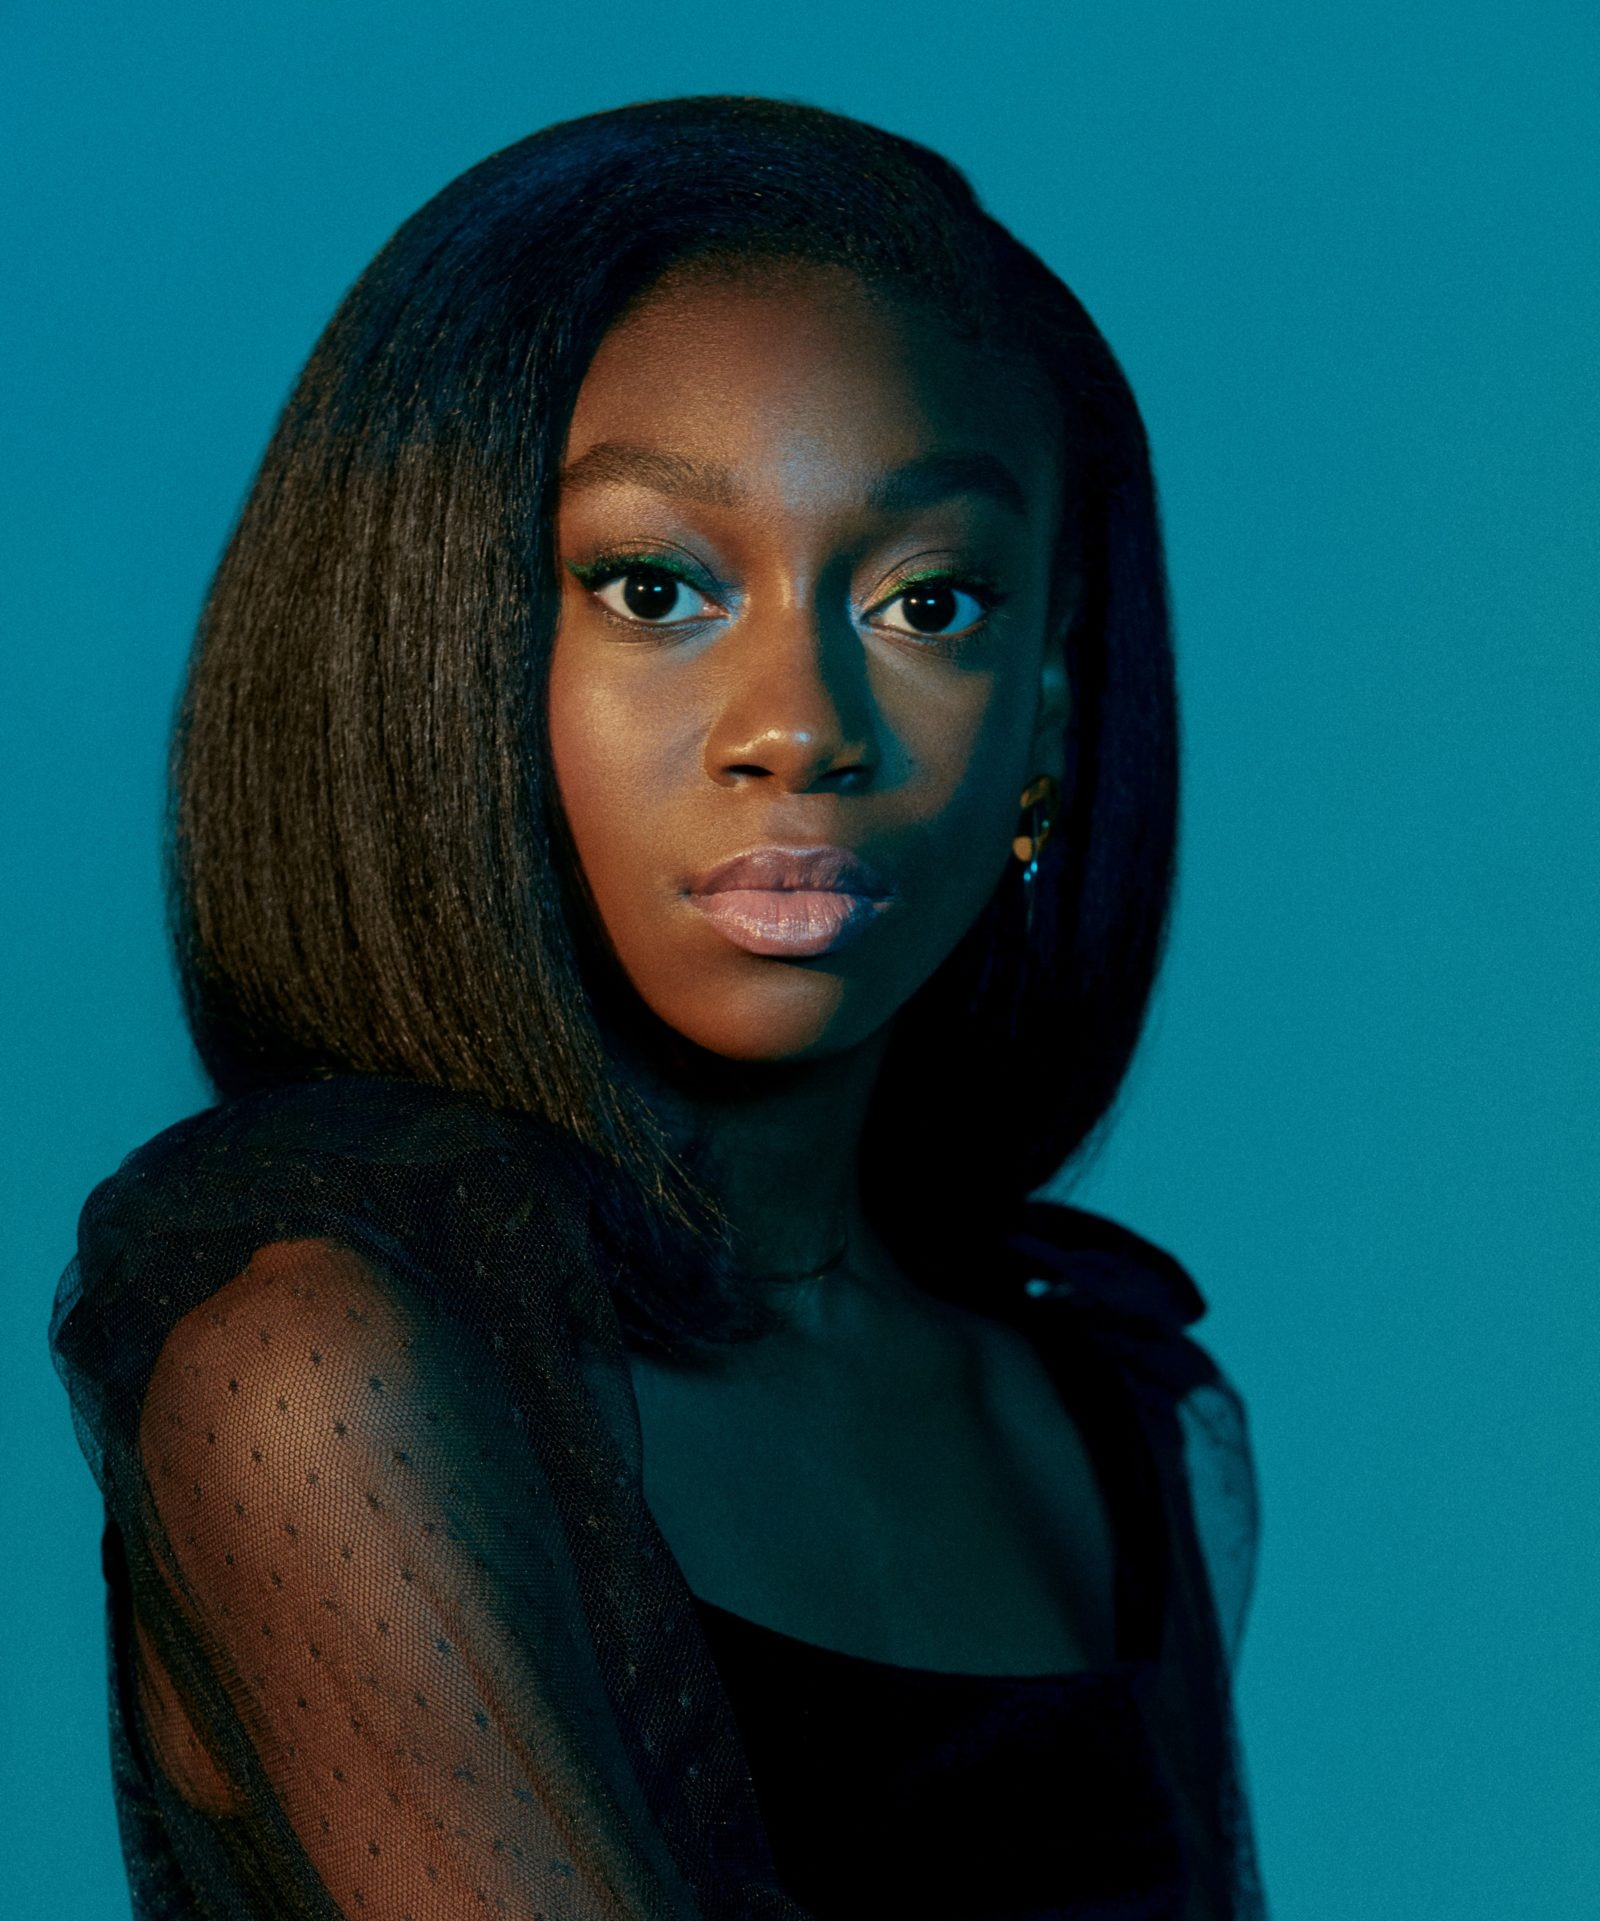 Shahadi Wright Joseph wearing black top with sheer sleeves against blue background